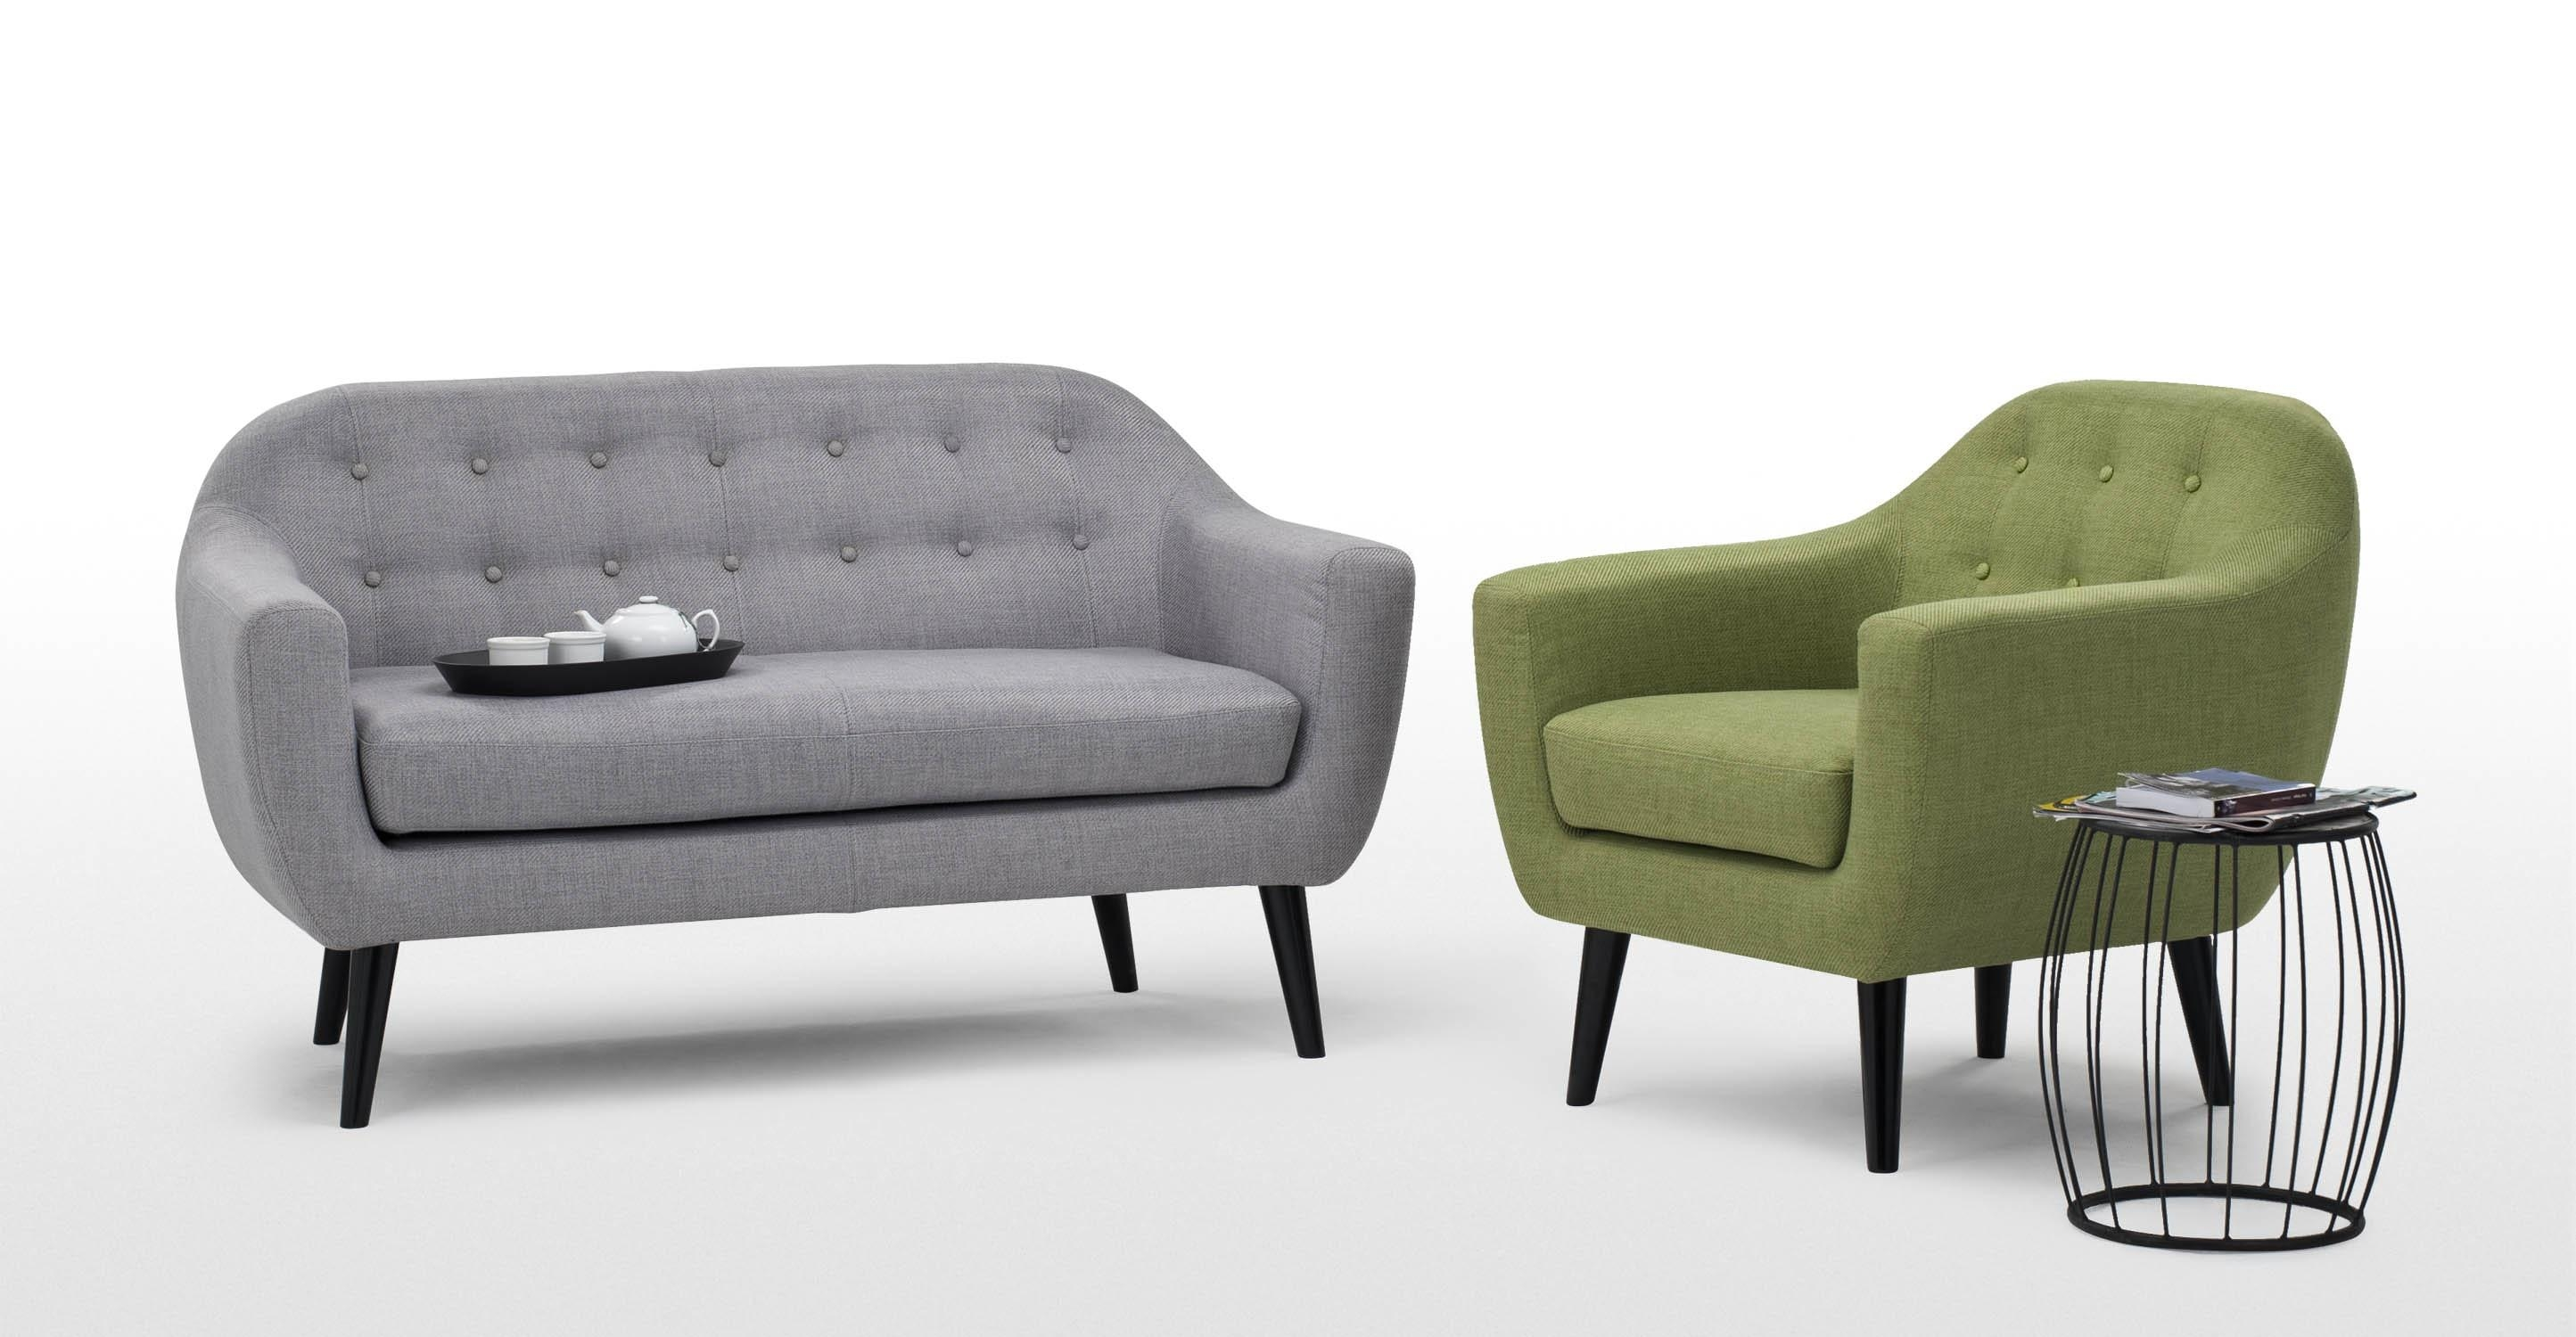 Ritchie 2 Seater Sofa In Pearl Grey | Made For 2 Seater Sofas (Image 15 of 20)